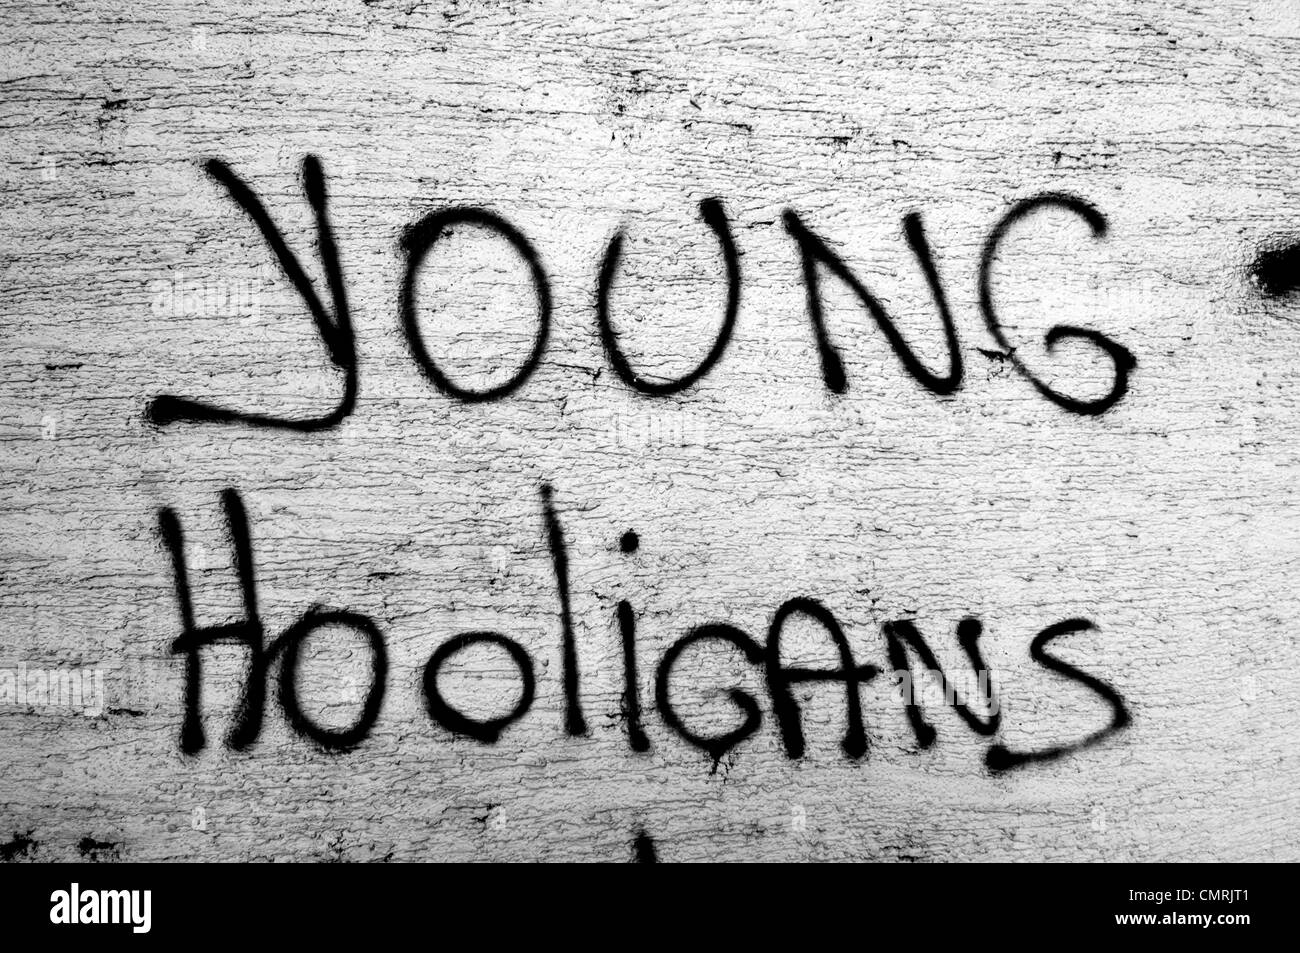 Young hooligans, black andwhite grafitti on a wall - Stock Image